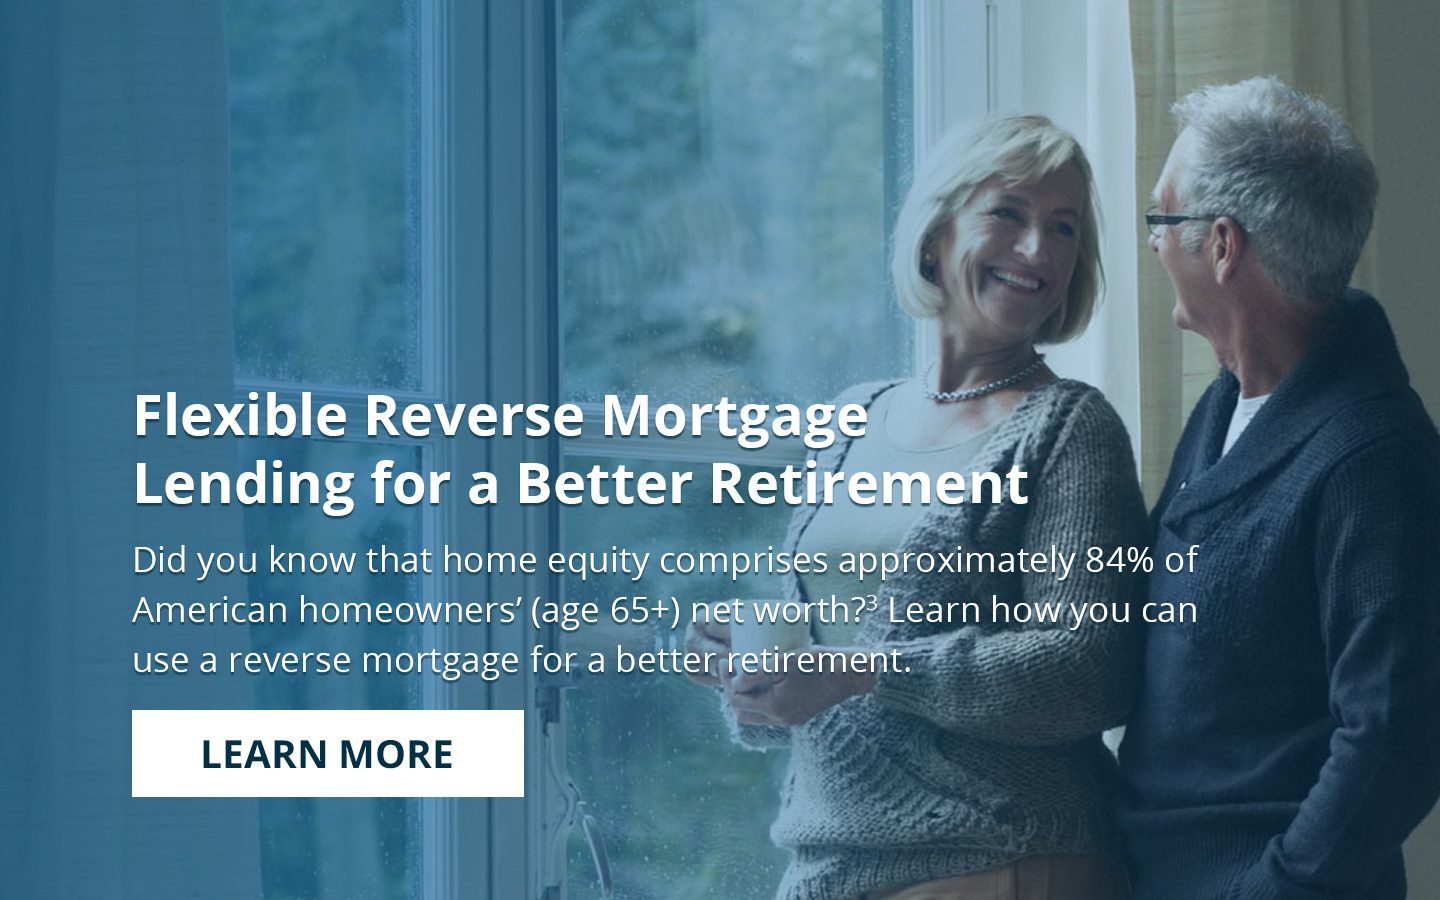 Flexible Reverse Mortgage Lending